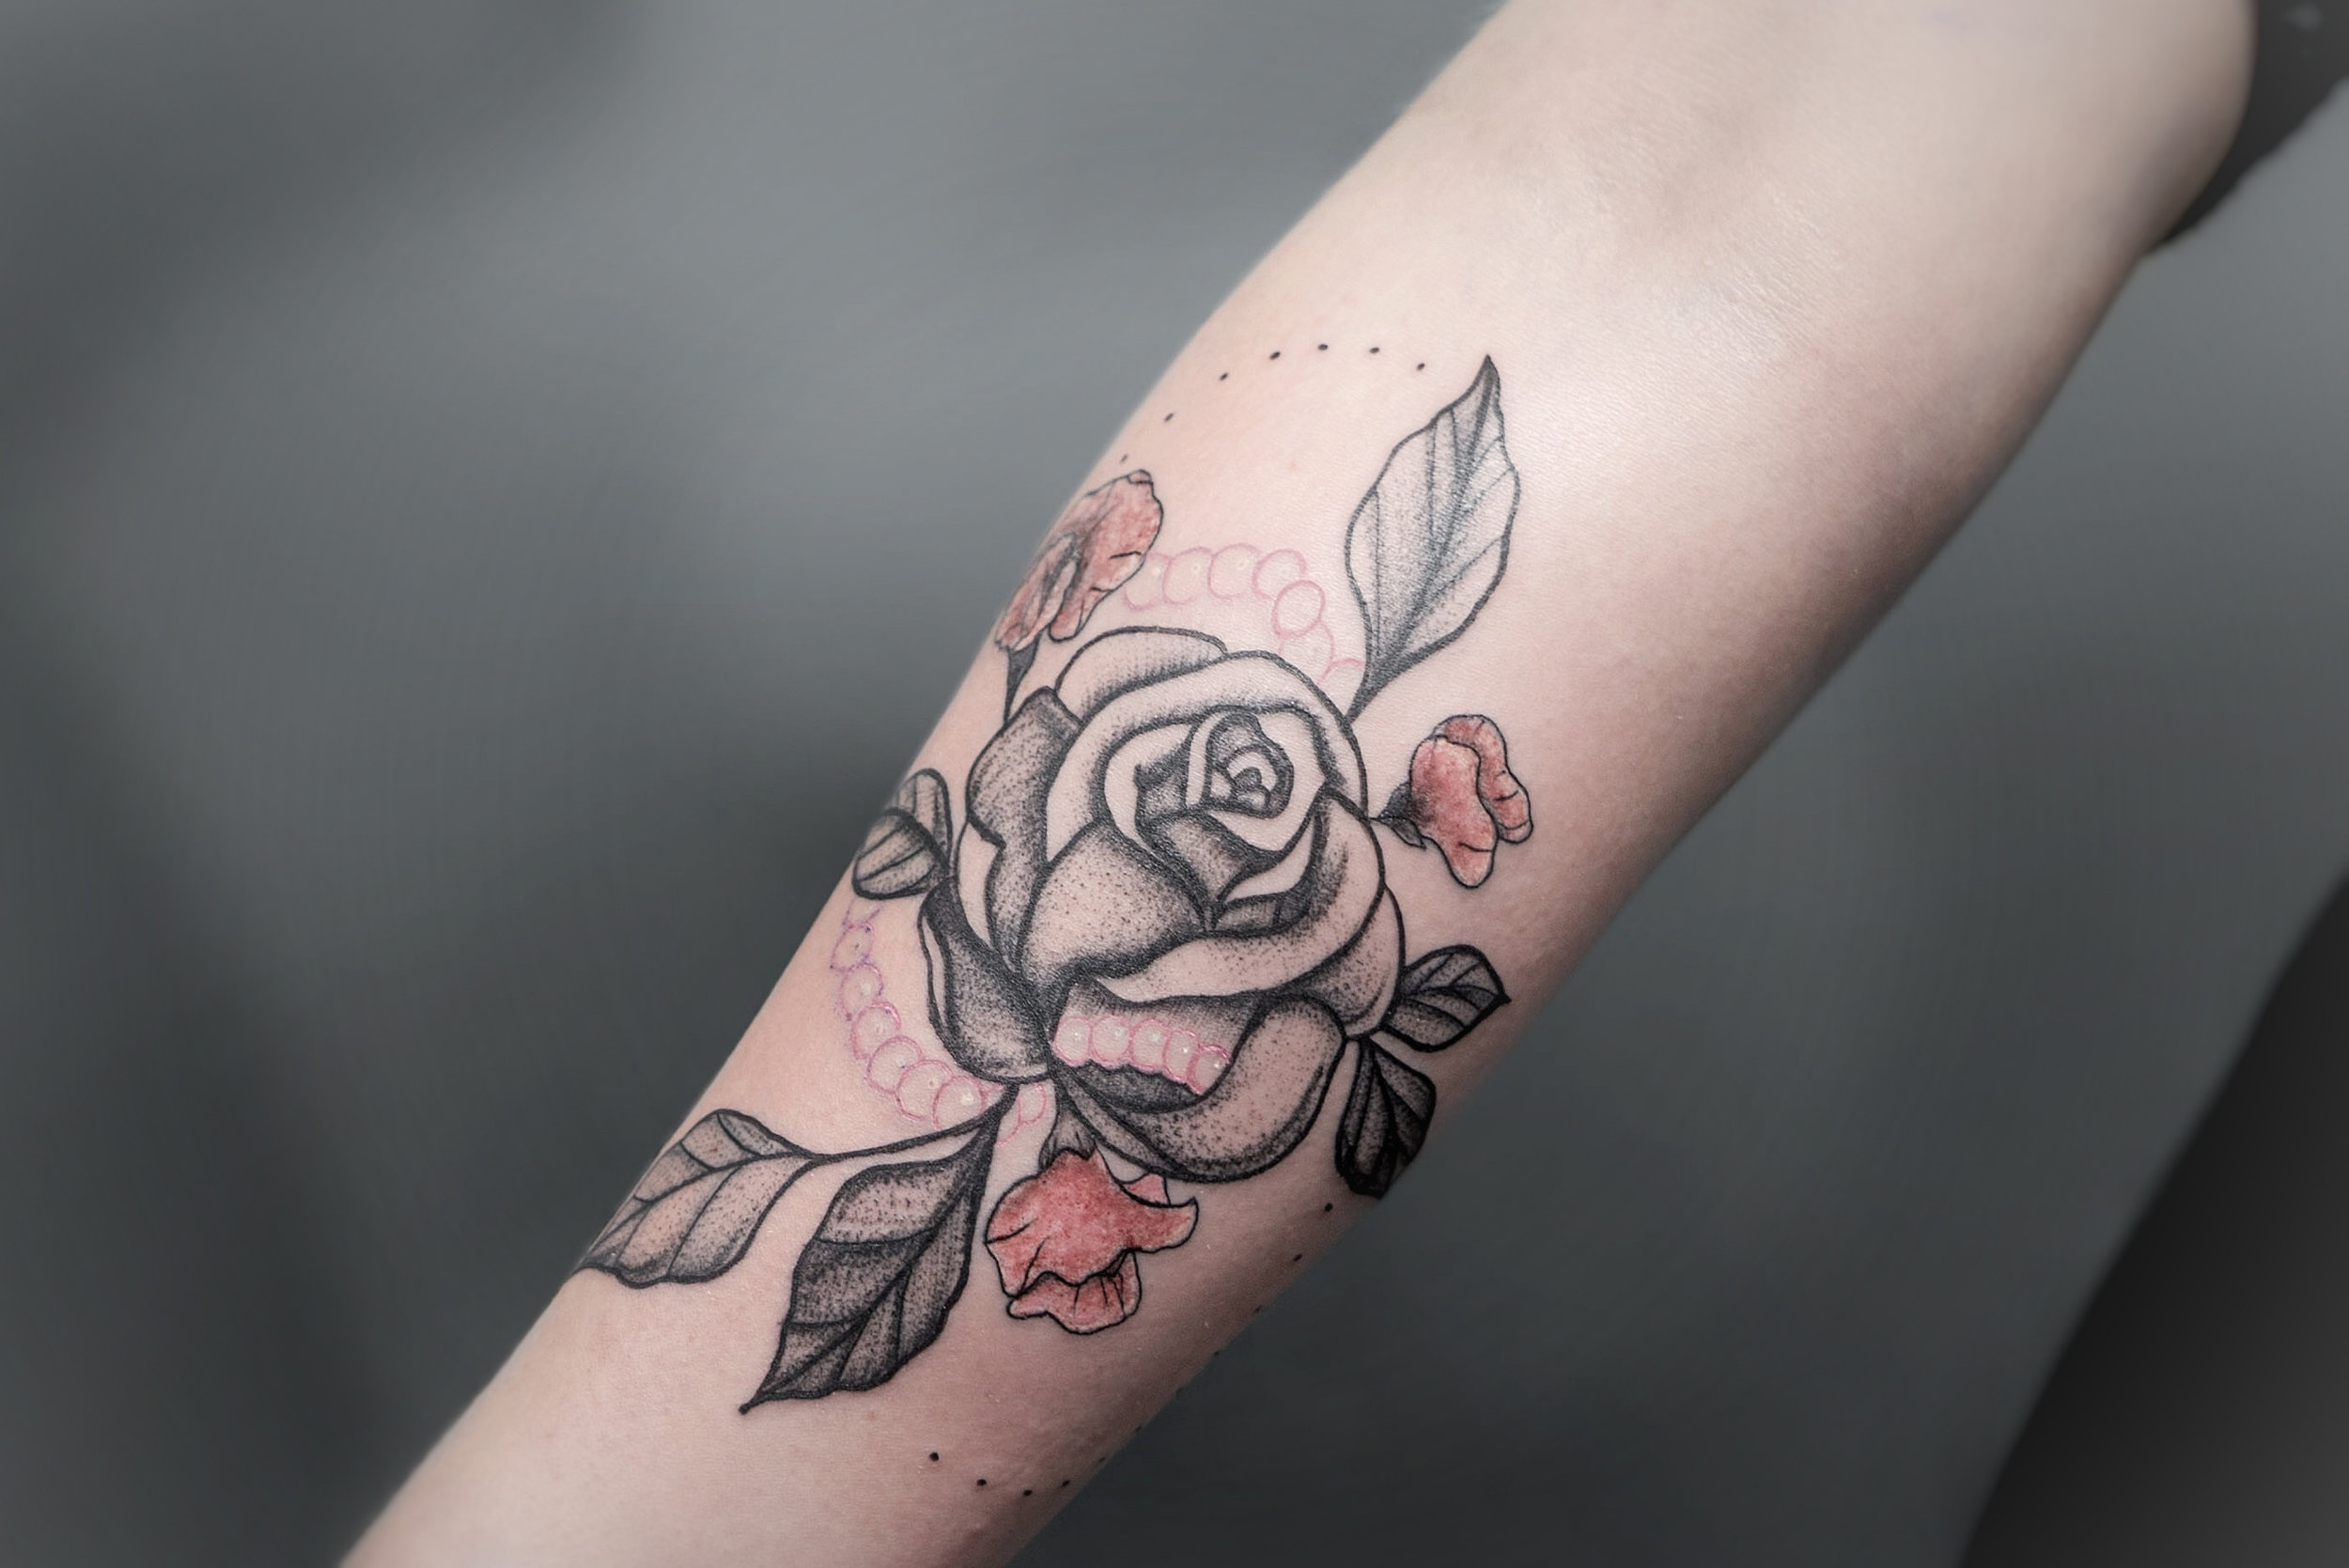 Custom Black and Grey with Rose Tattoo by Dani at Certified Tattoo Studios Denver Co.jpg